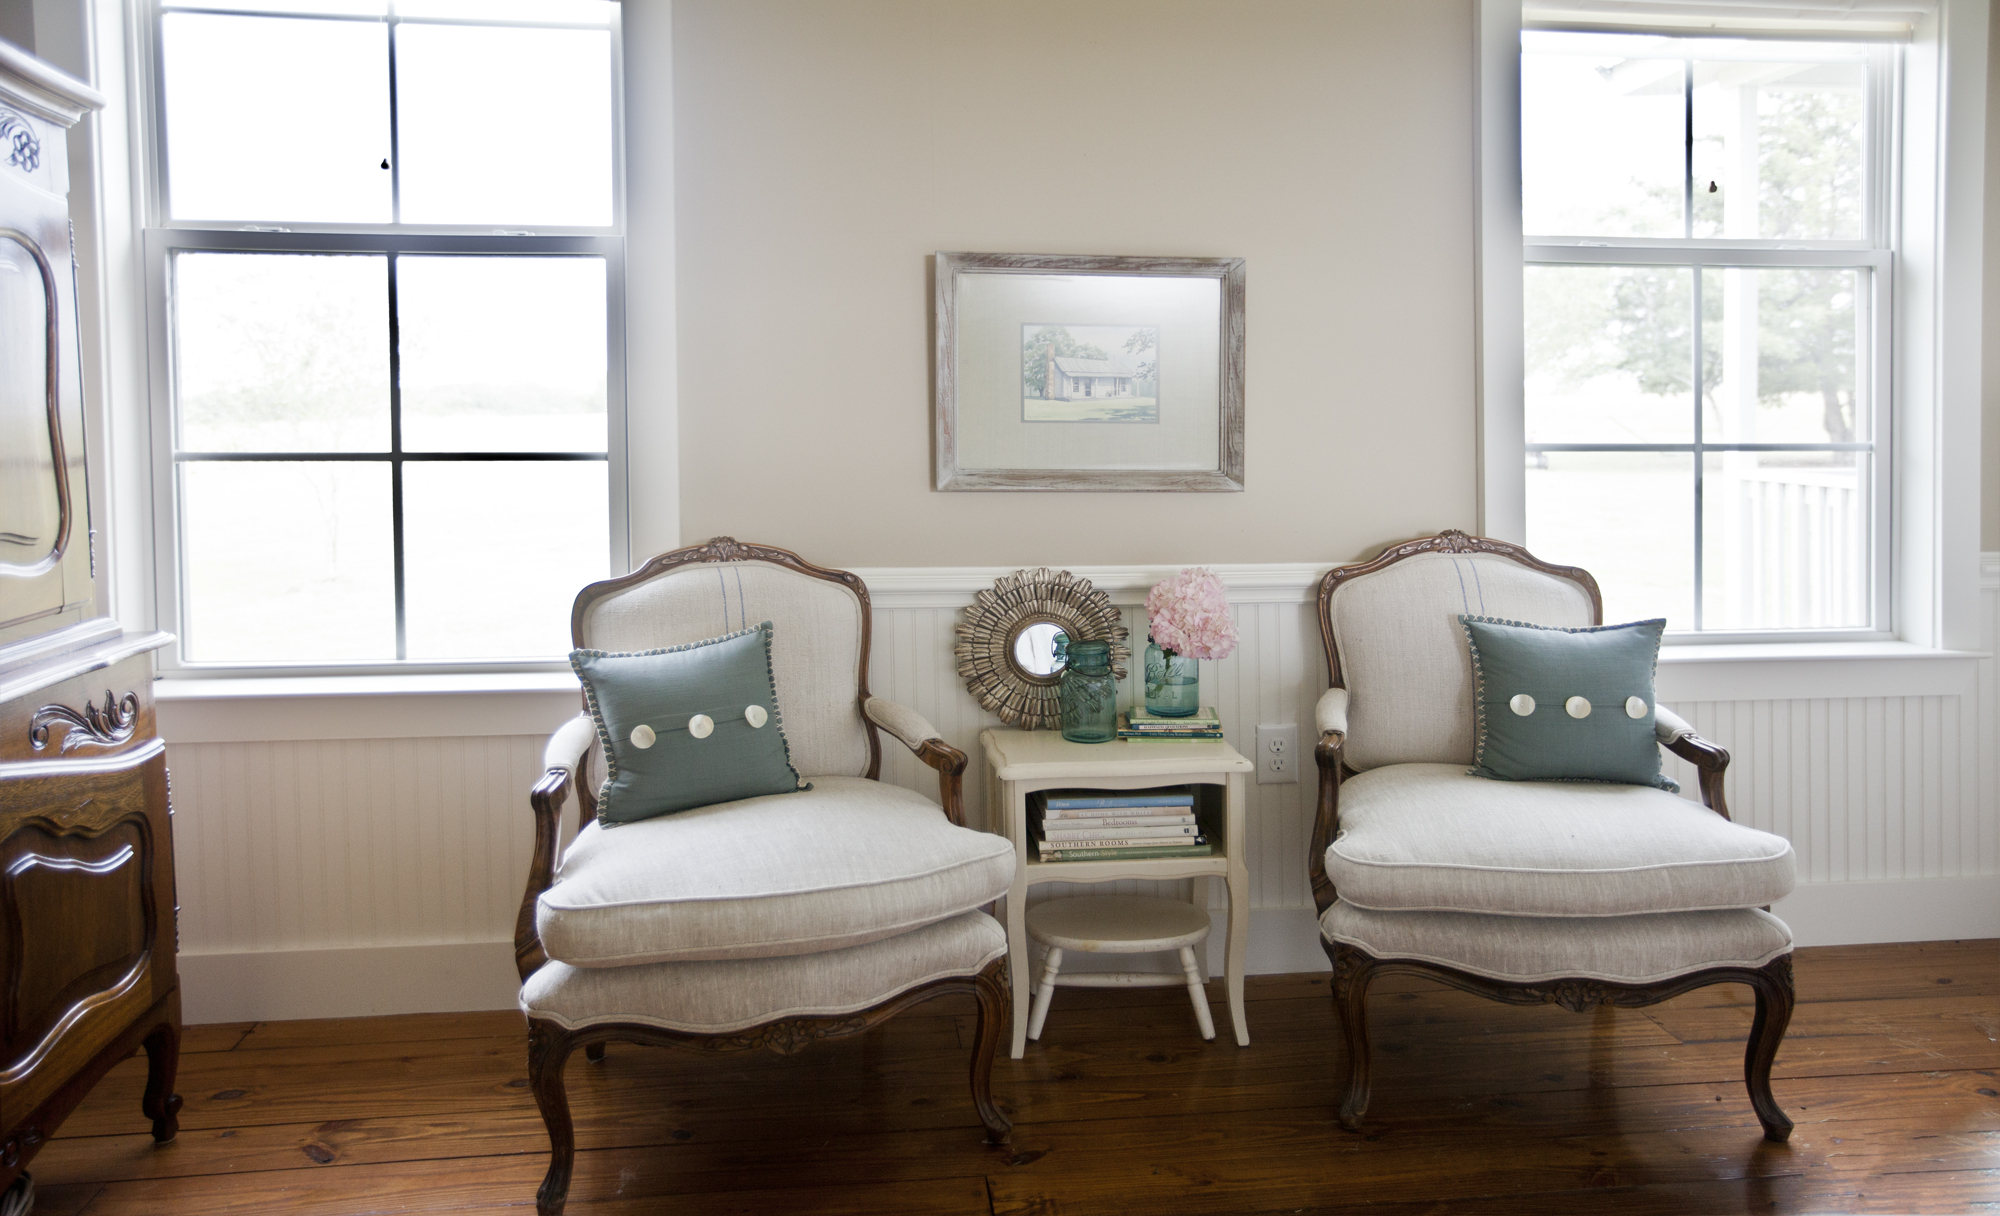 Farmhouse living room chairs - French Chairs In Farm Master